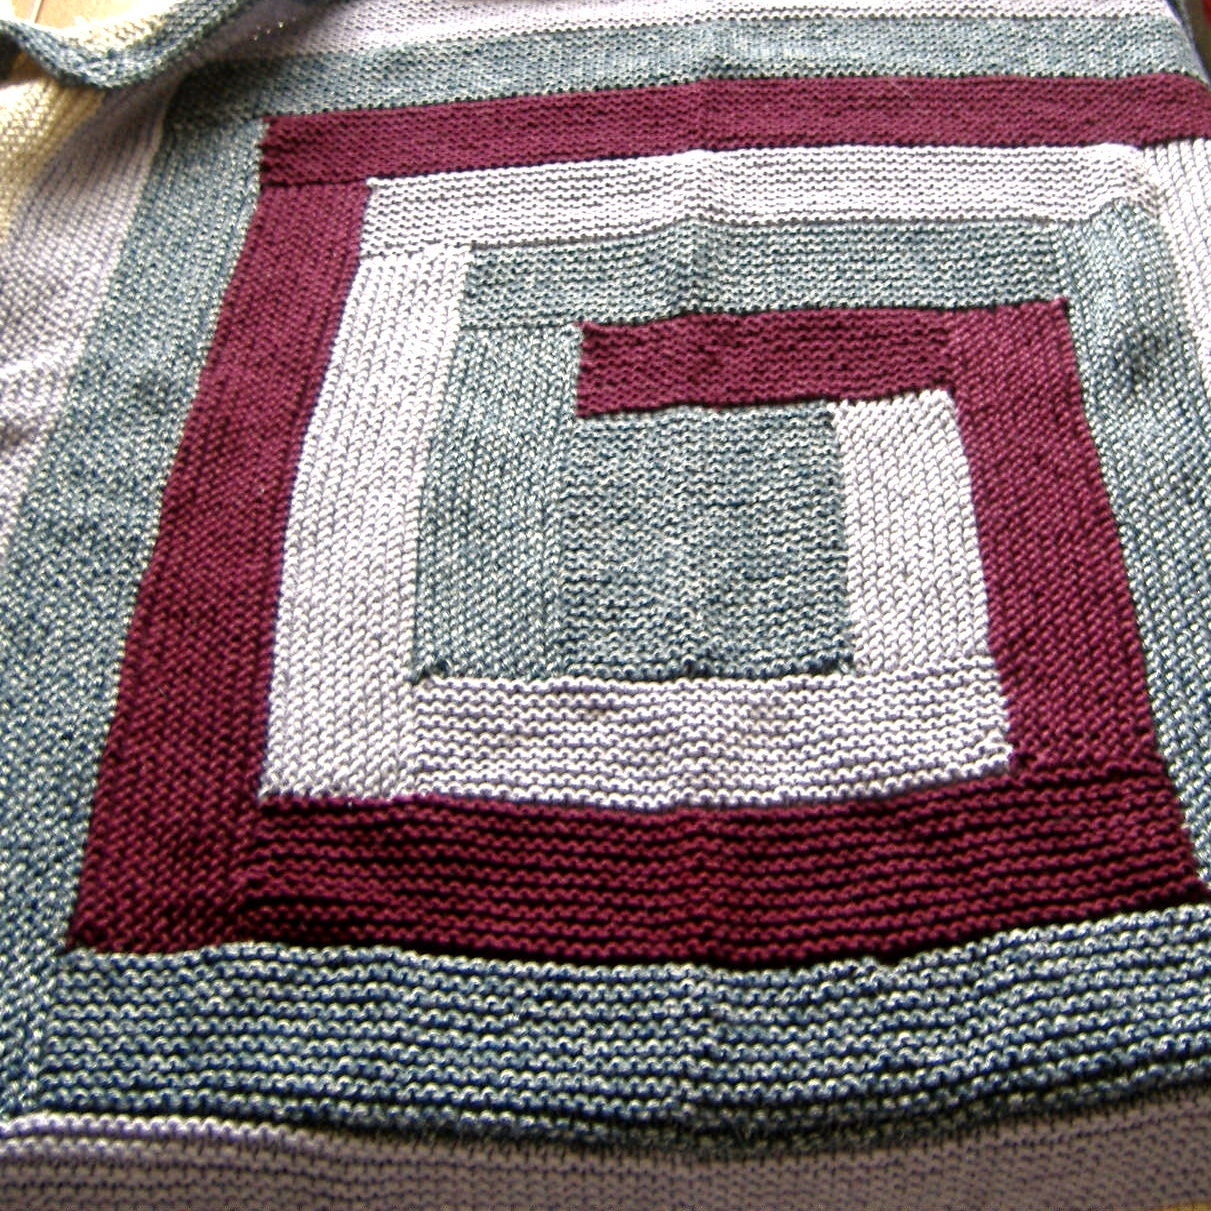 Log Cabin style hand knitted Baby Blanket Warm Blue Maroon